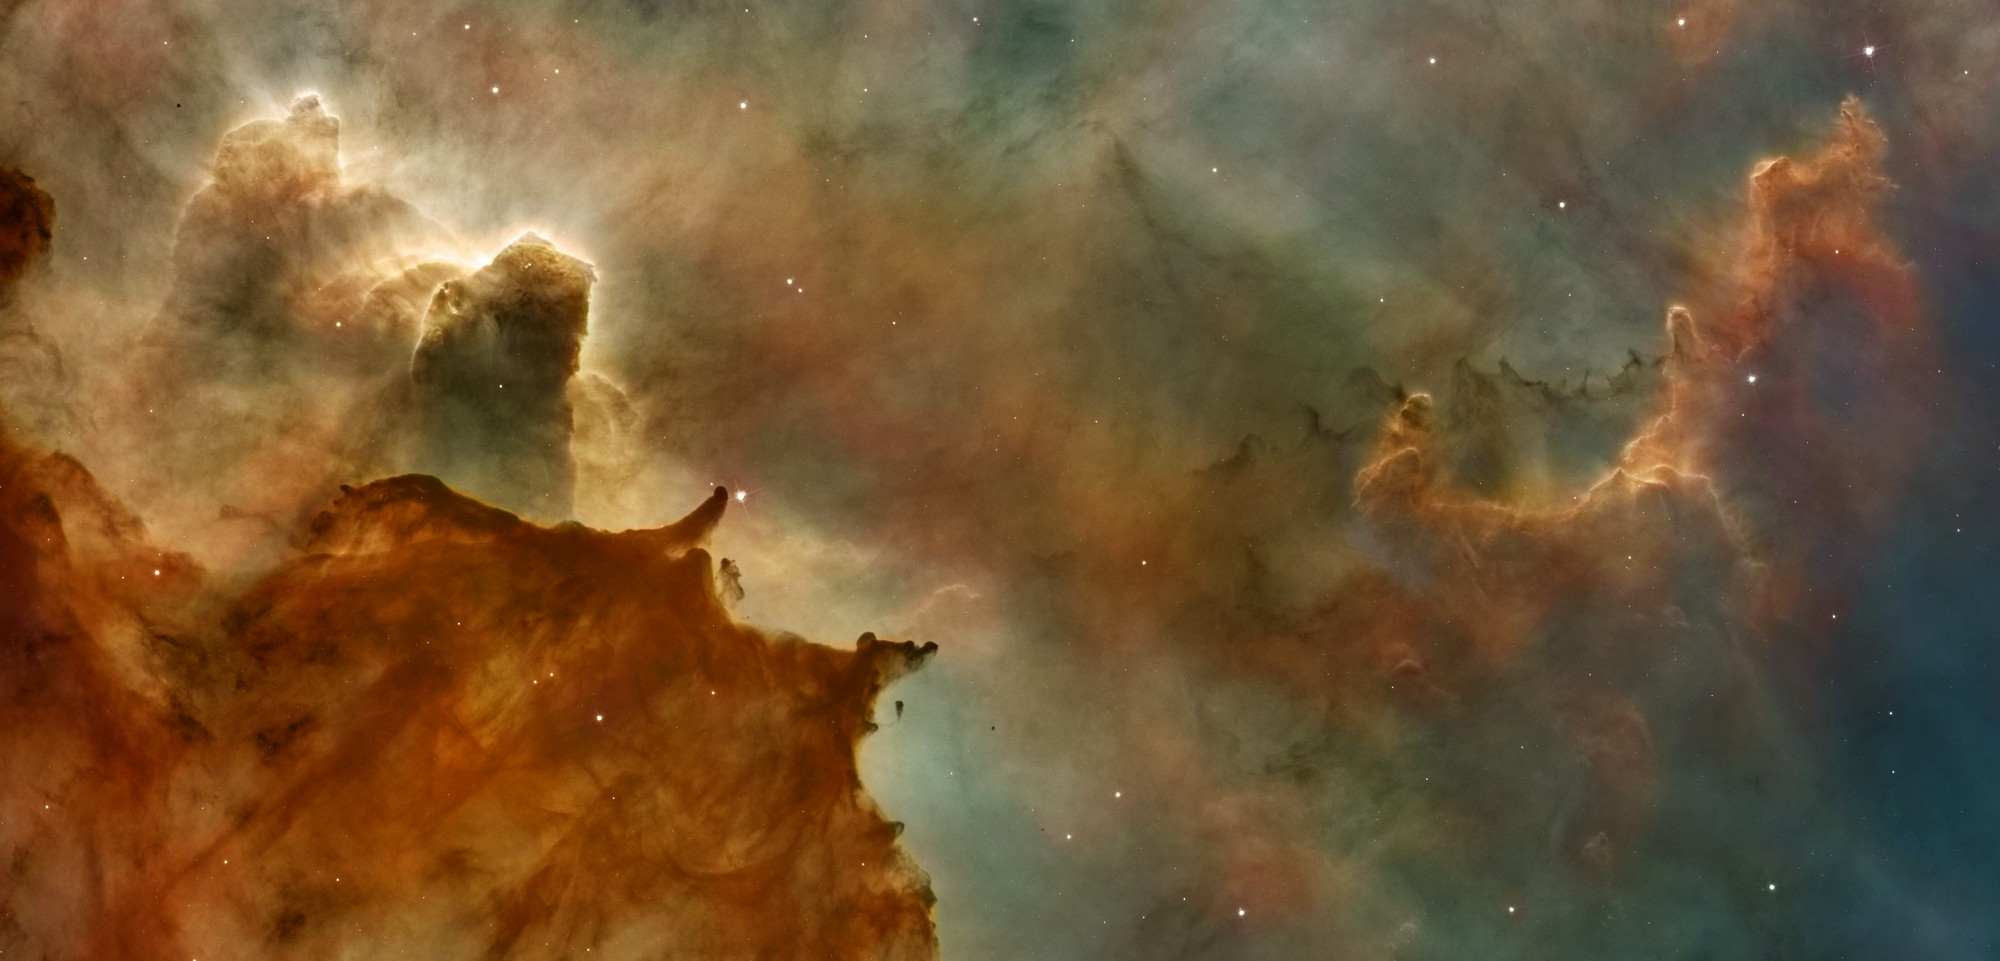 An image of emission nebulas in space.